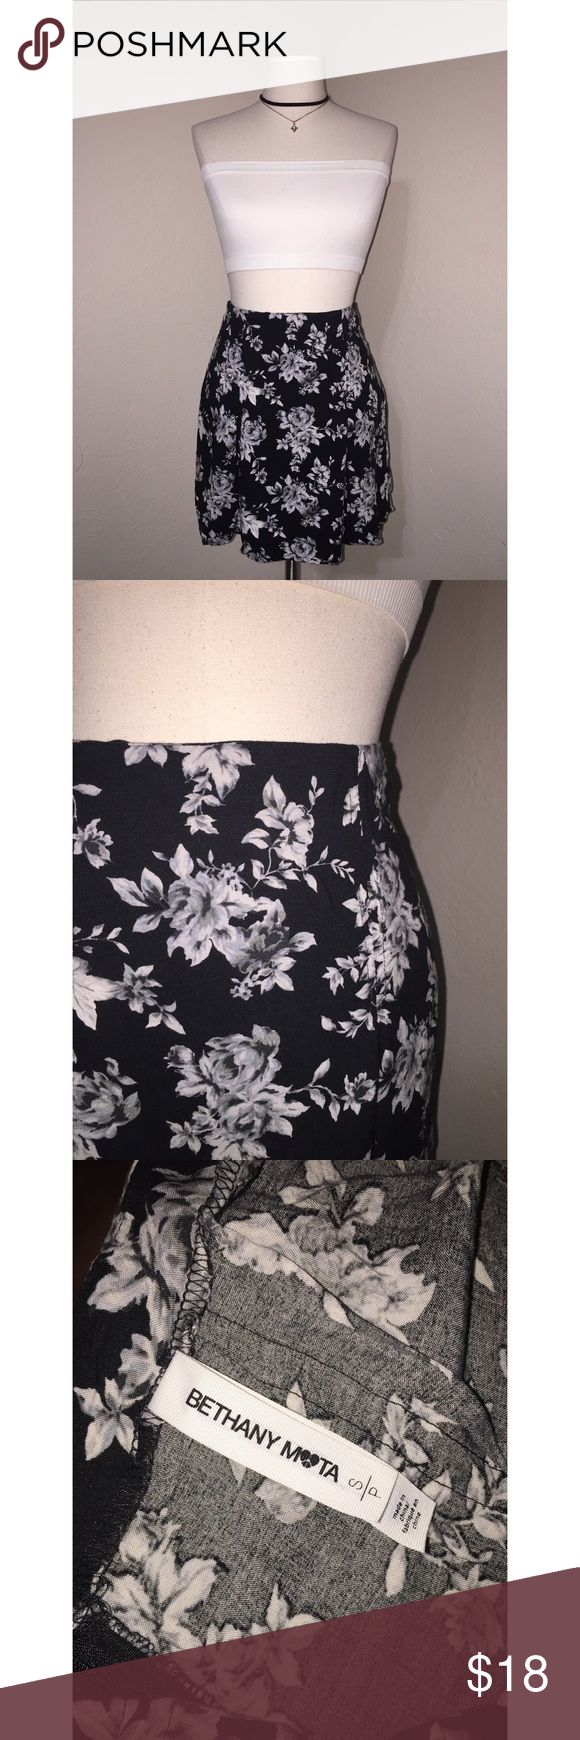 🖤NWOT Bethany Mota Floral Skirt🖤 Floral Bethany Mota Collection skirt with two cute pleats in the front and back ♥️😍! It has no tags but I never wore it! 💕 Aeropostale Skirts Circle & Skater